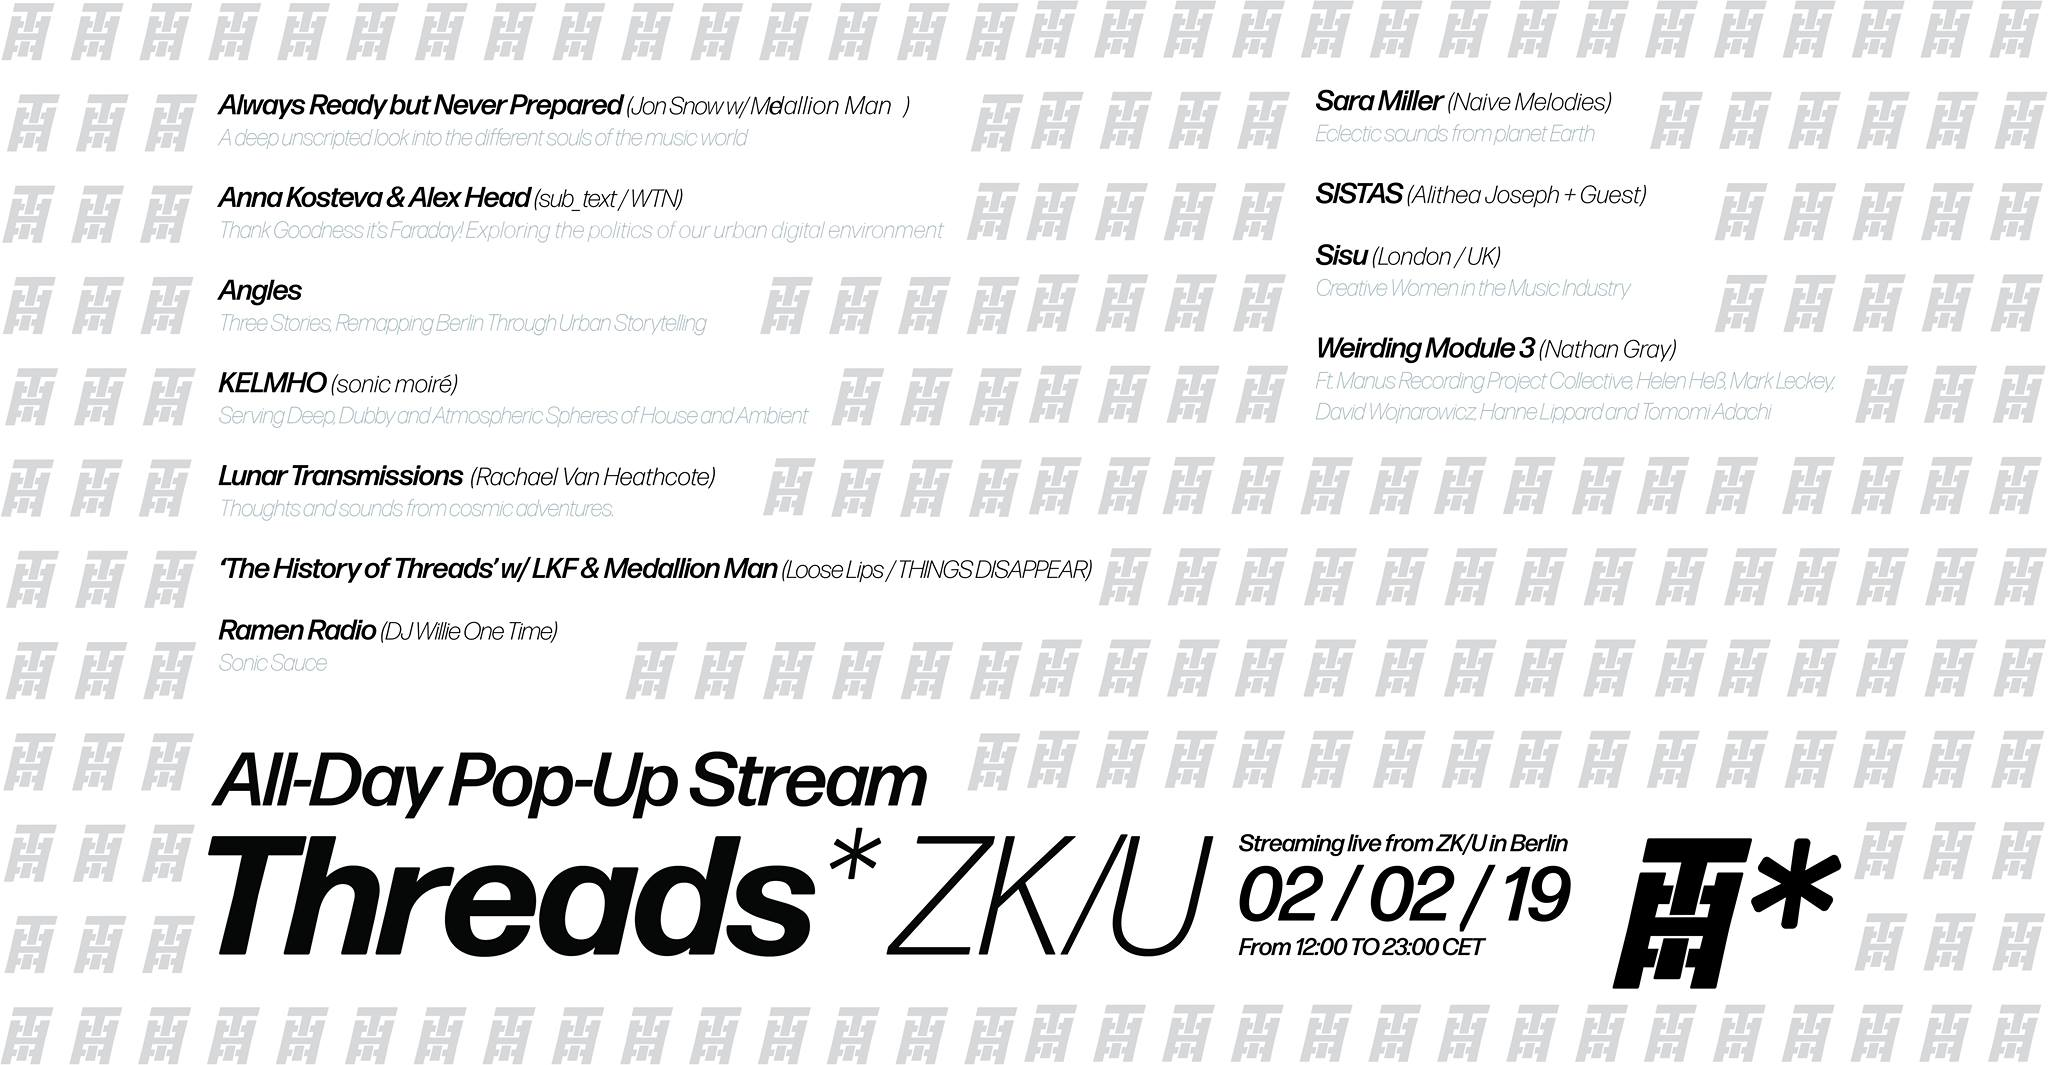 Threads*ZK/U Pop Up – All-Day Stream (02/02/19)